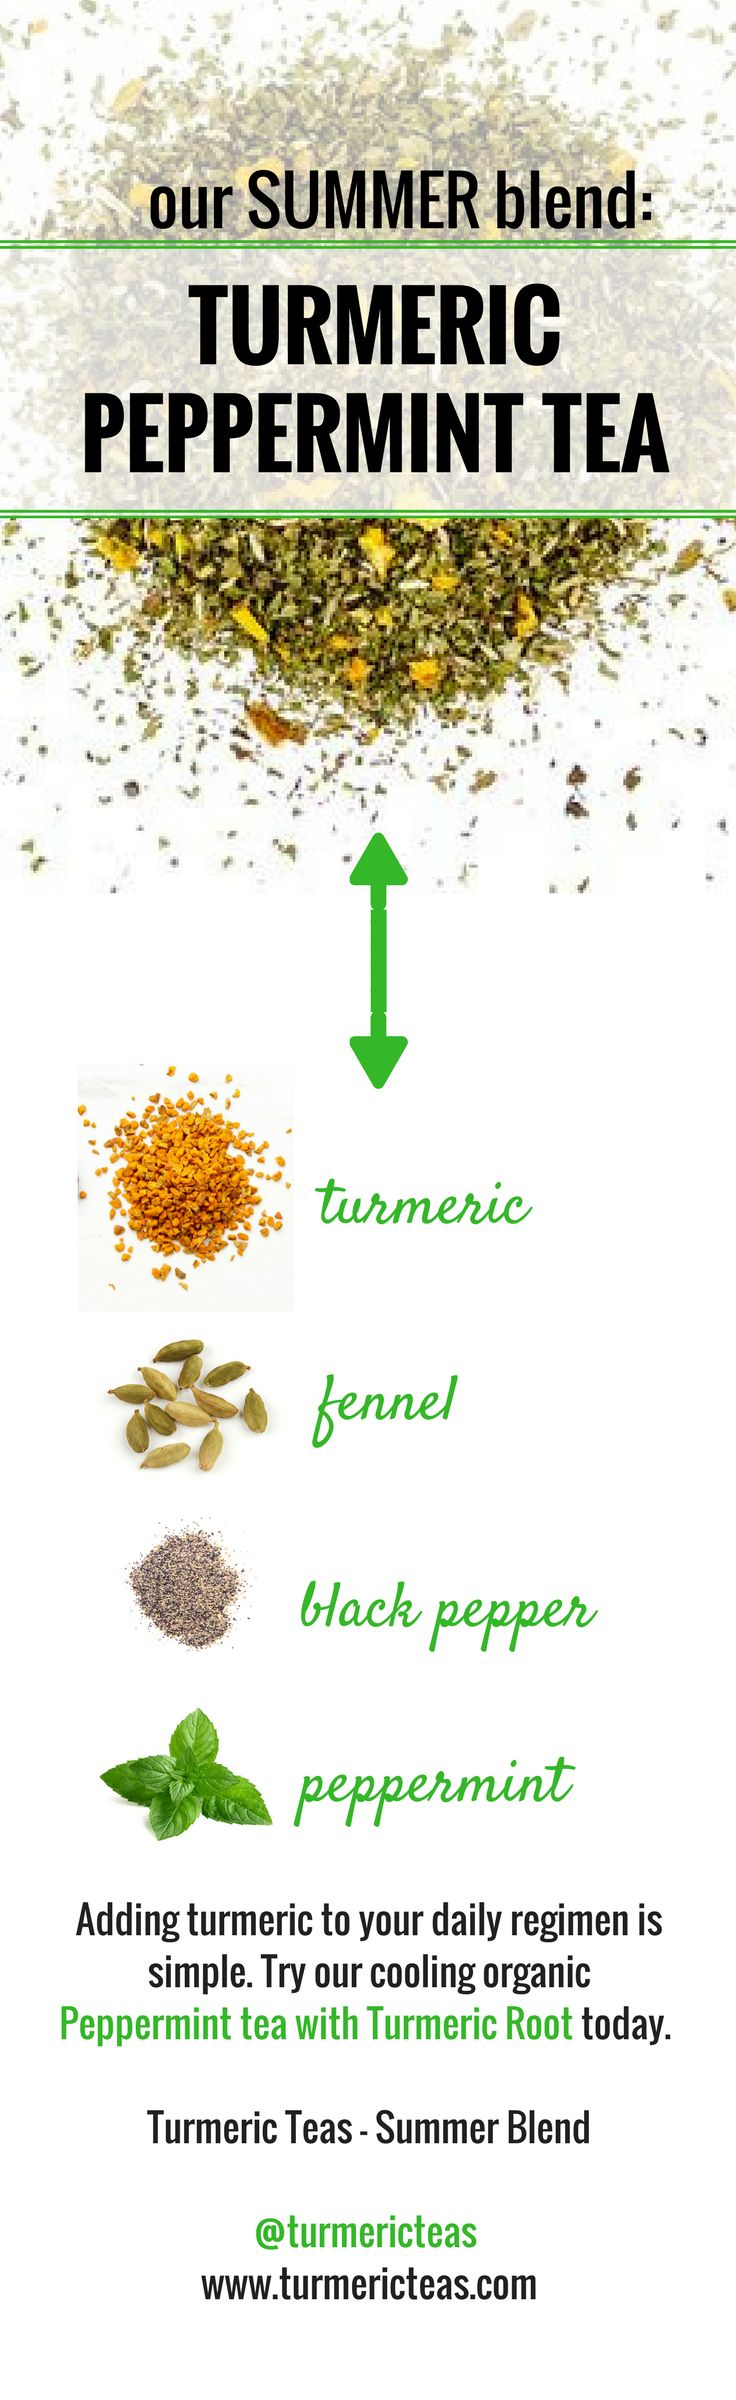 What's inside our Turmeric Teas Summer blend? A cooling organic peppermint loose leaf tea with turmeric root! Turmeric, fennel, black pepper, and peppermint - and these are just our main ingredients! Click to learn more about our Summer blend and purchase the blend. #turmericteas #turmeric #pepperminttea #peppermint #organic #organicteas #healthyteas #teas